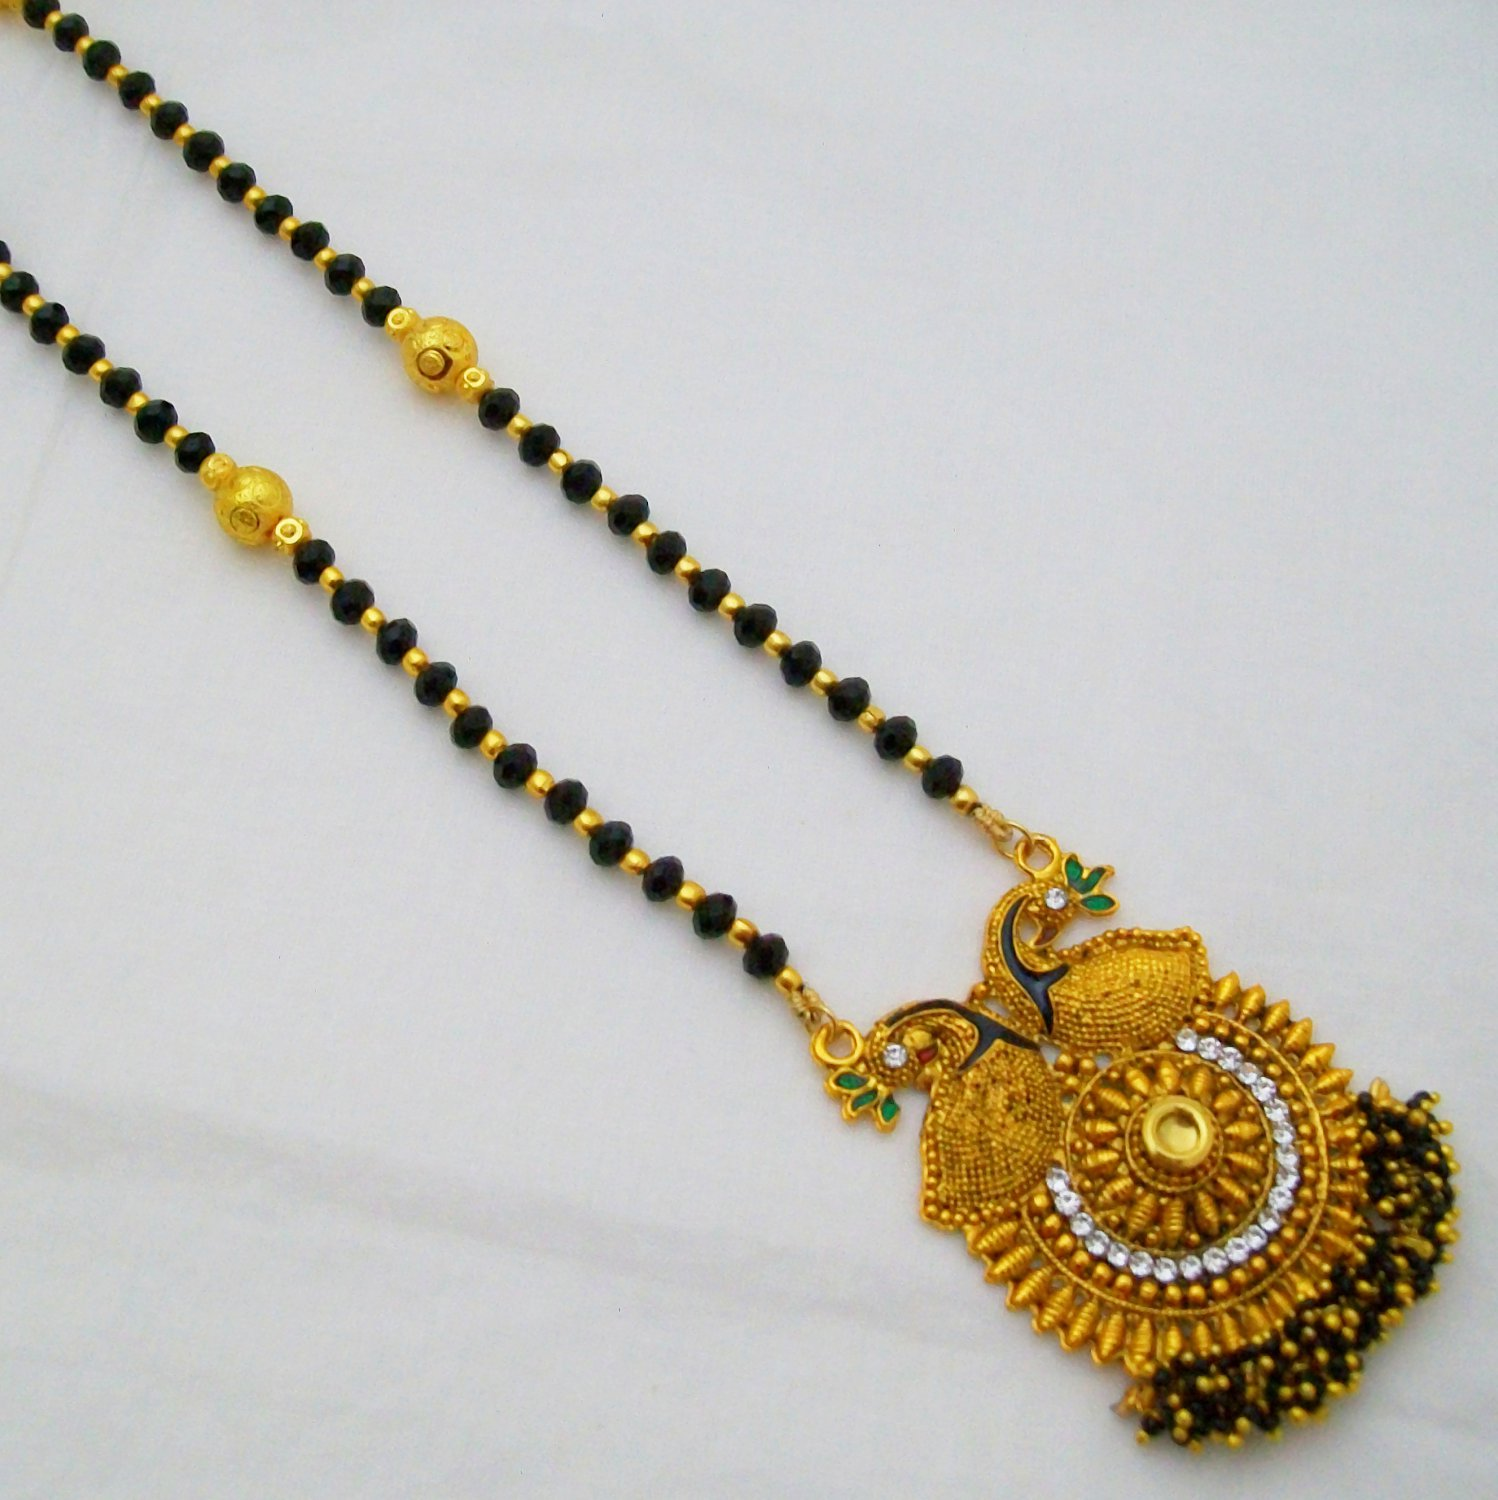 Indian 22k Gold Plated Wedding Necklace Earrings Jewelry: 22K Gold Plated Mangalsutra South Indian Wedding